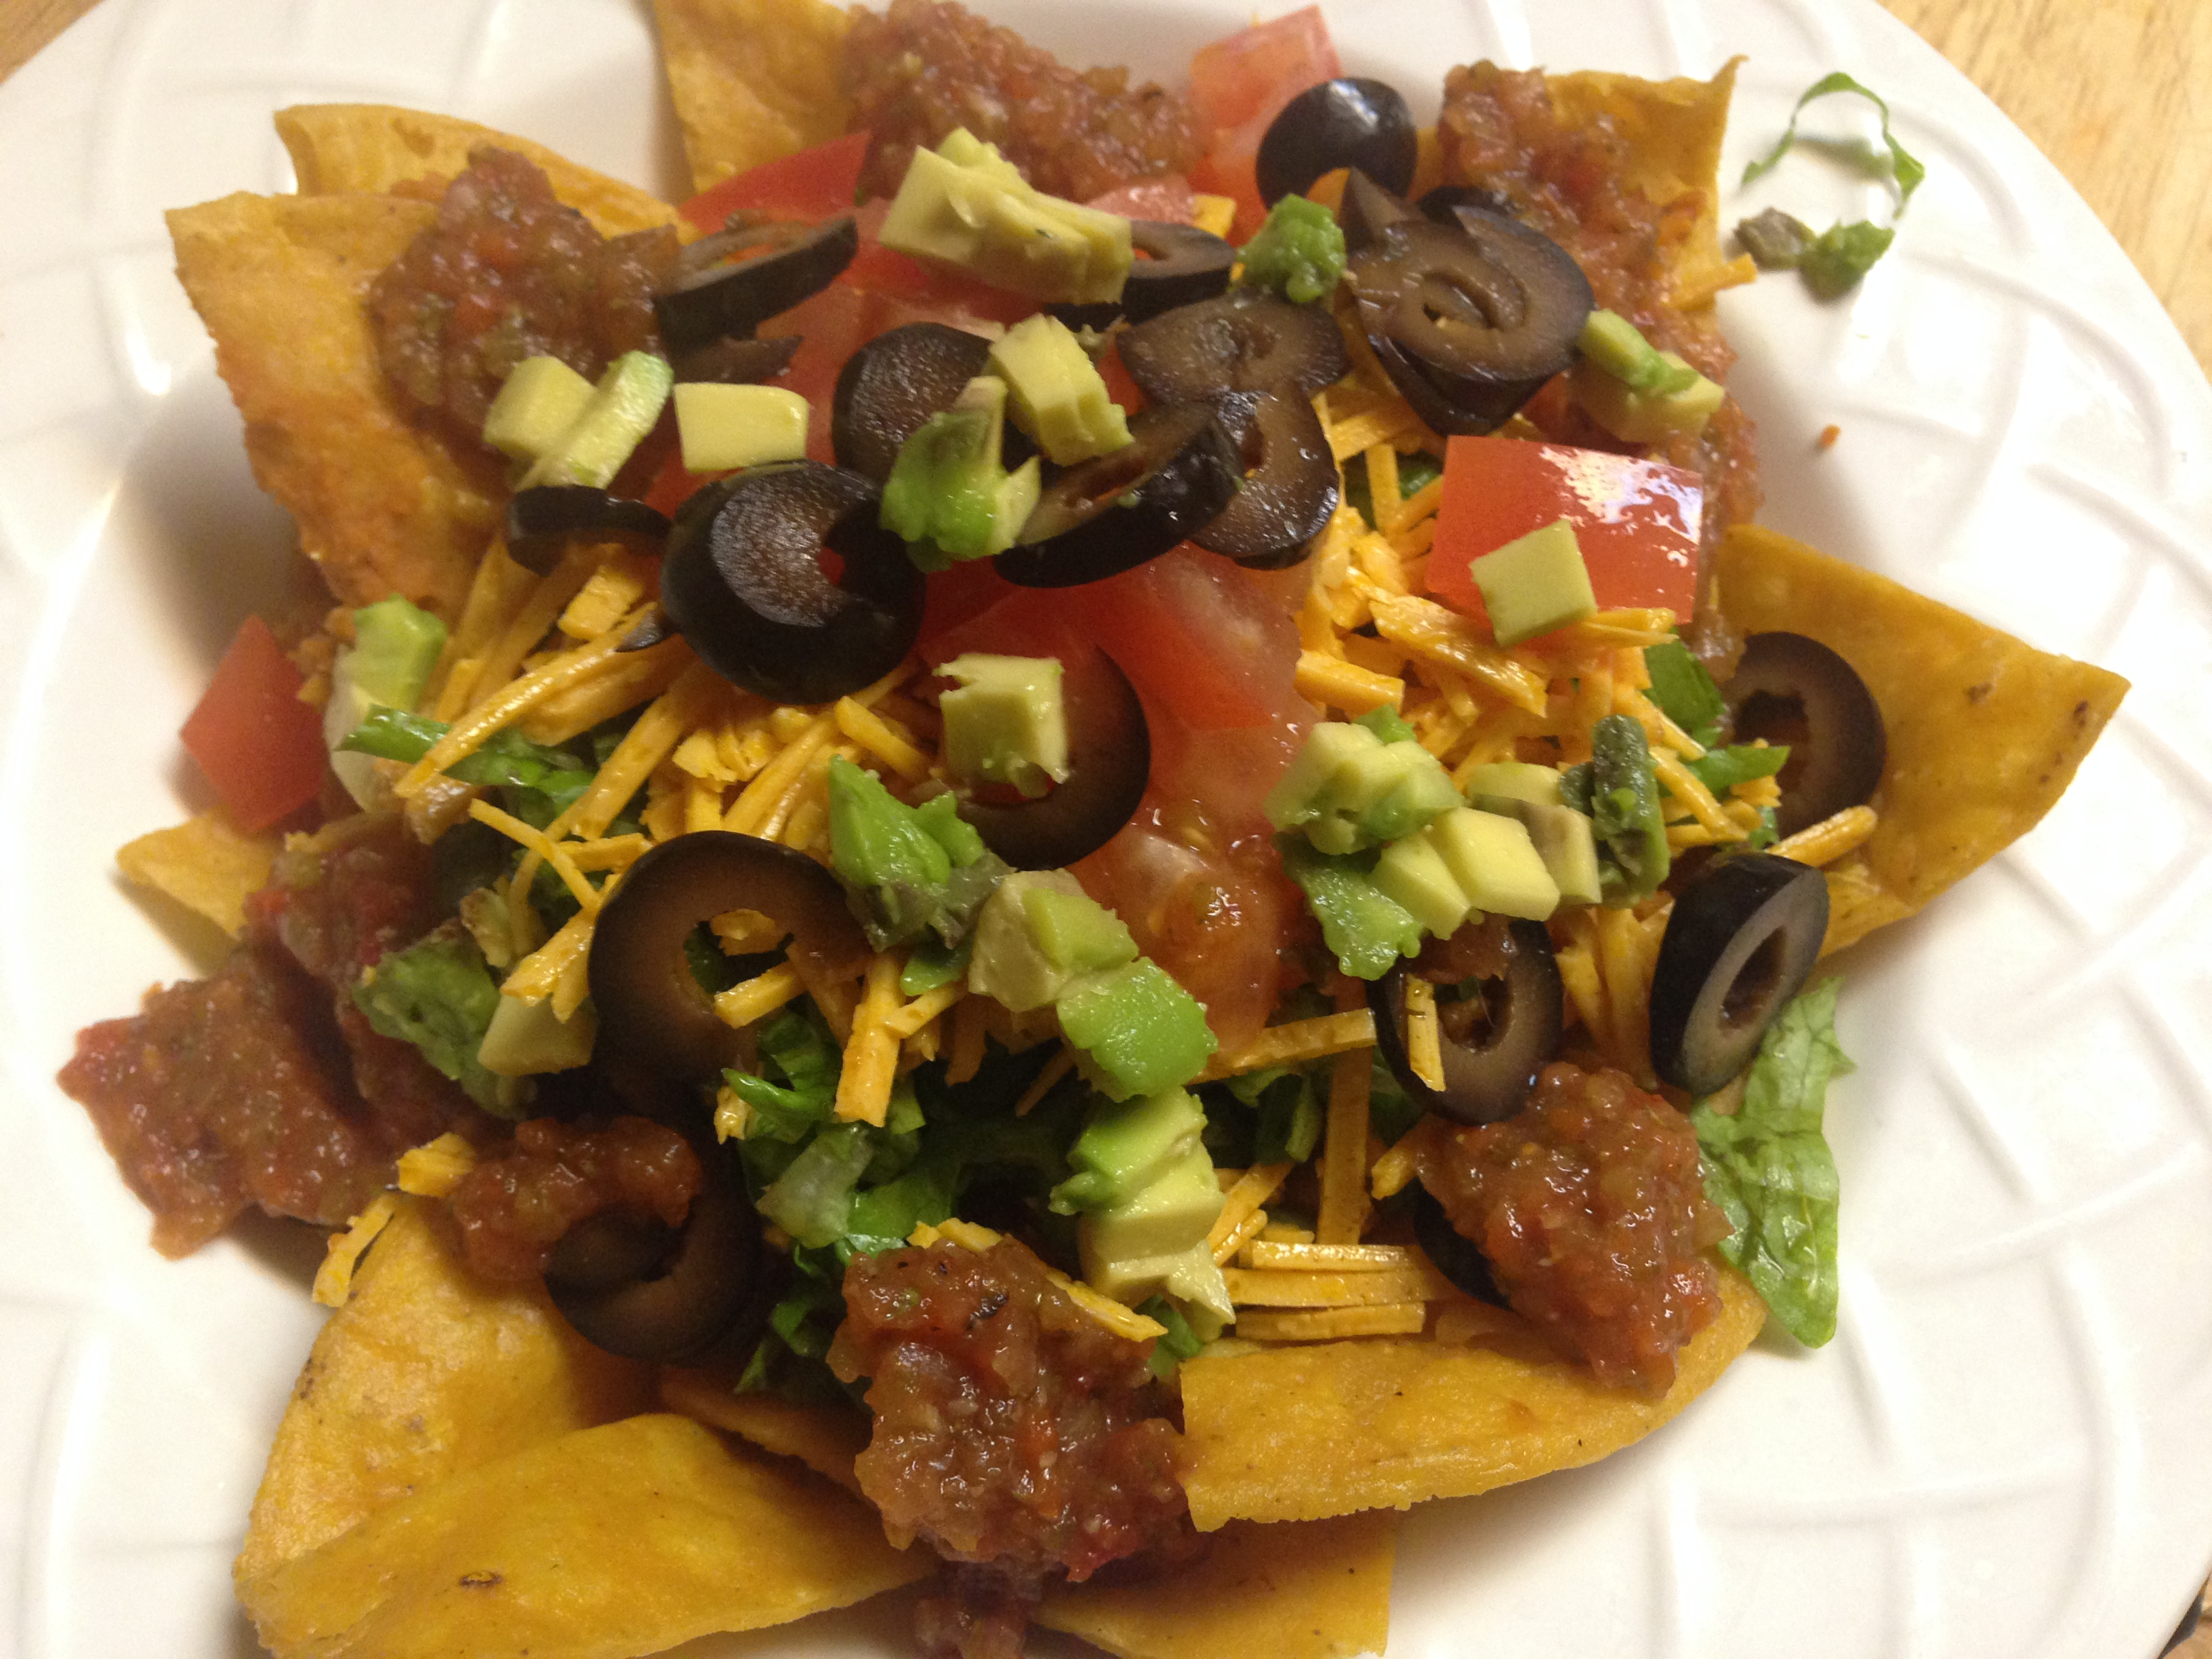 Nachos with Lentils by Chef Johnna Gale